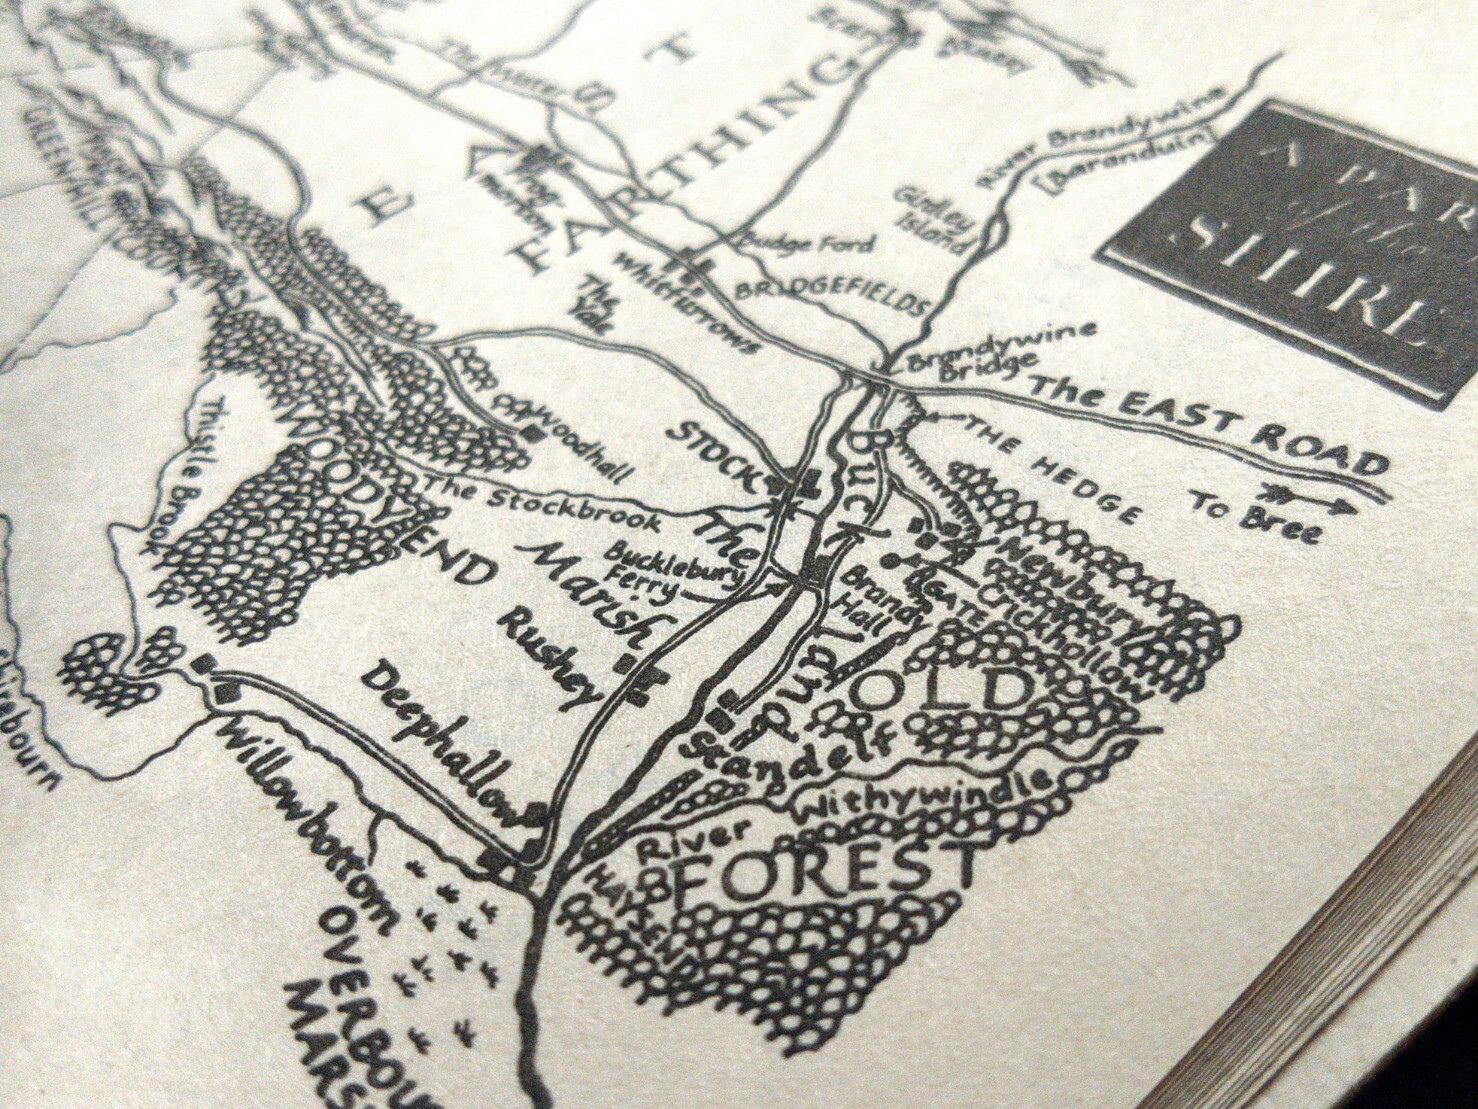 A map of the Shire, focused on Buckland and the Old Forest.